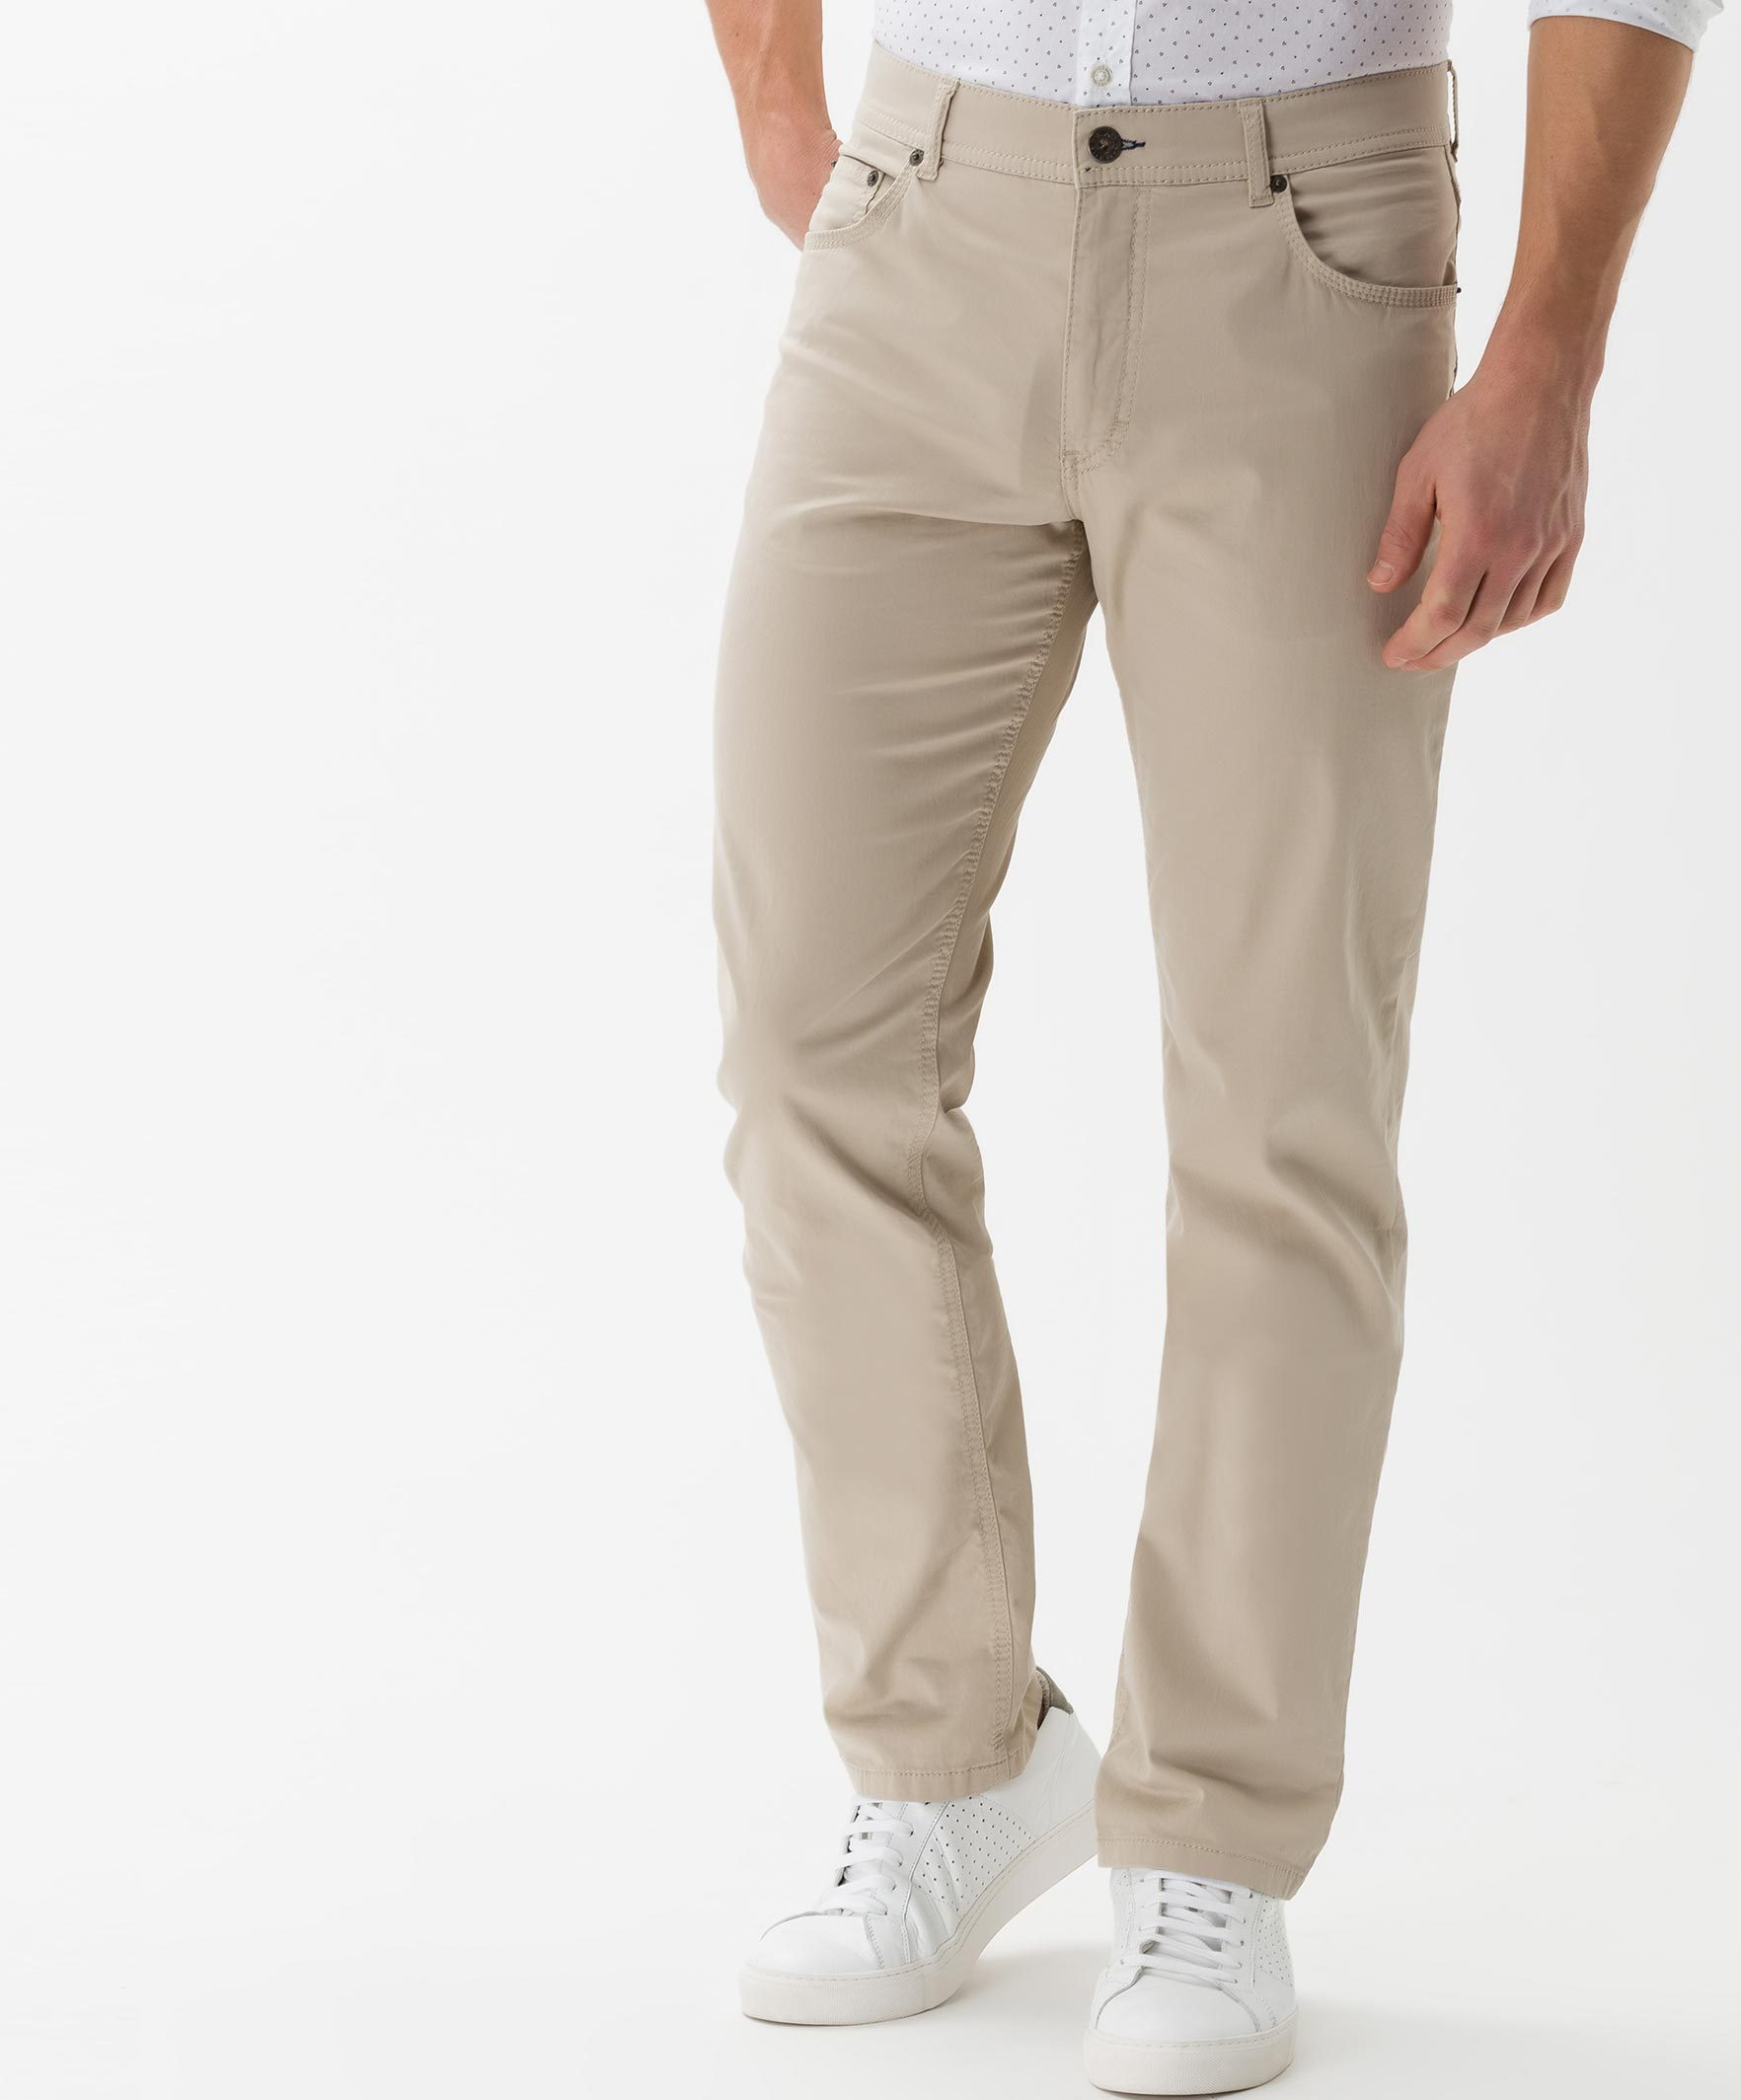 BRAX MENS TROUSERS brax mens cooper fancy five-pocket pants - beige LTUULCN